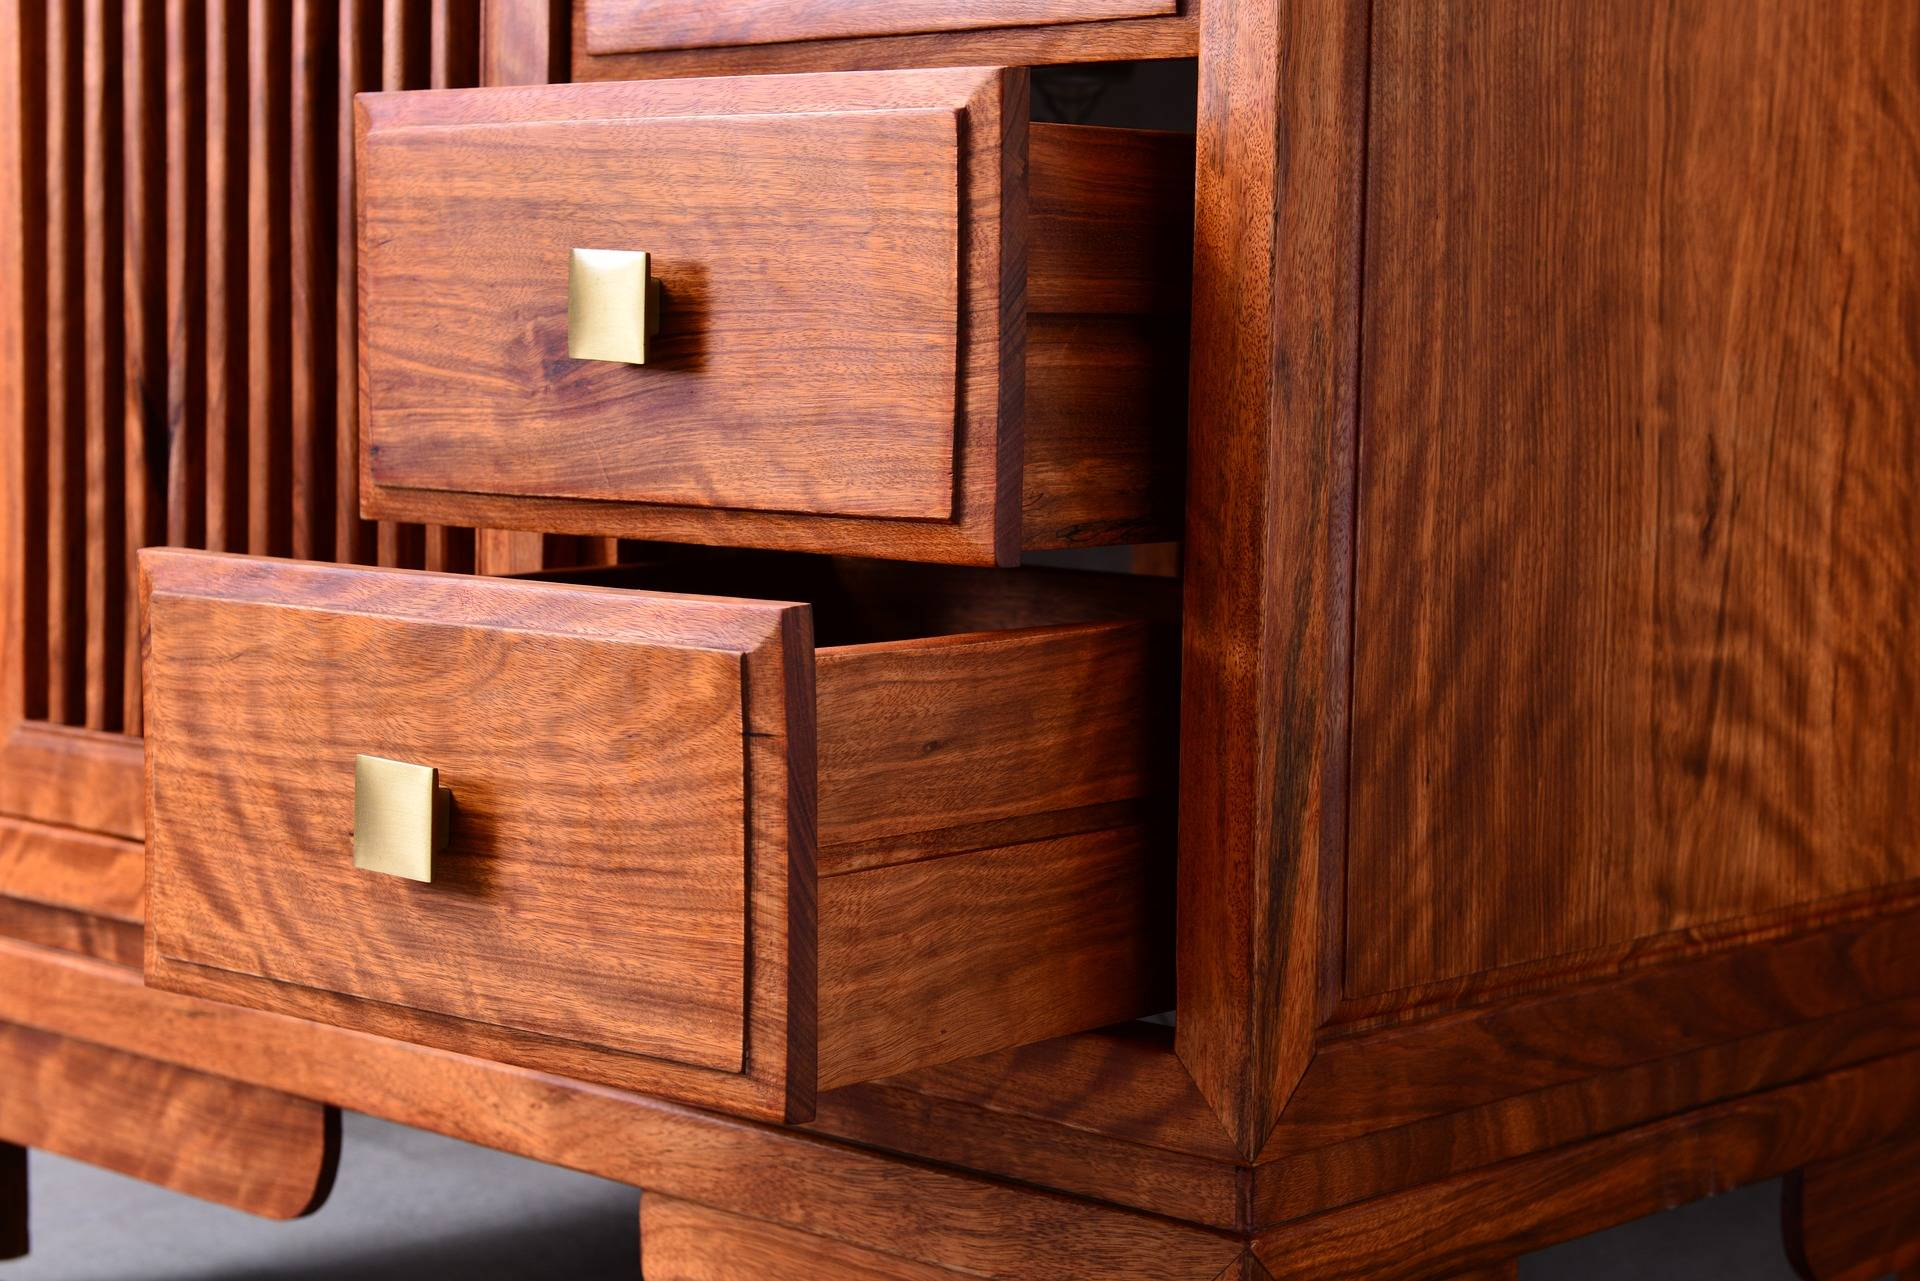 How to Clean Wood Furniture Safely - 3 Steps + No Harsh Chemicals! —  Microfiber Wholesale